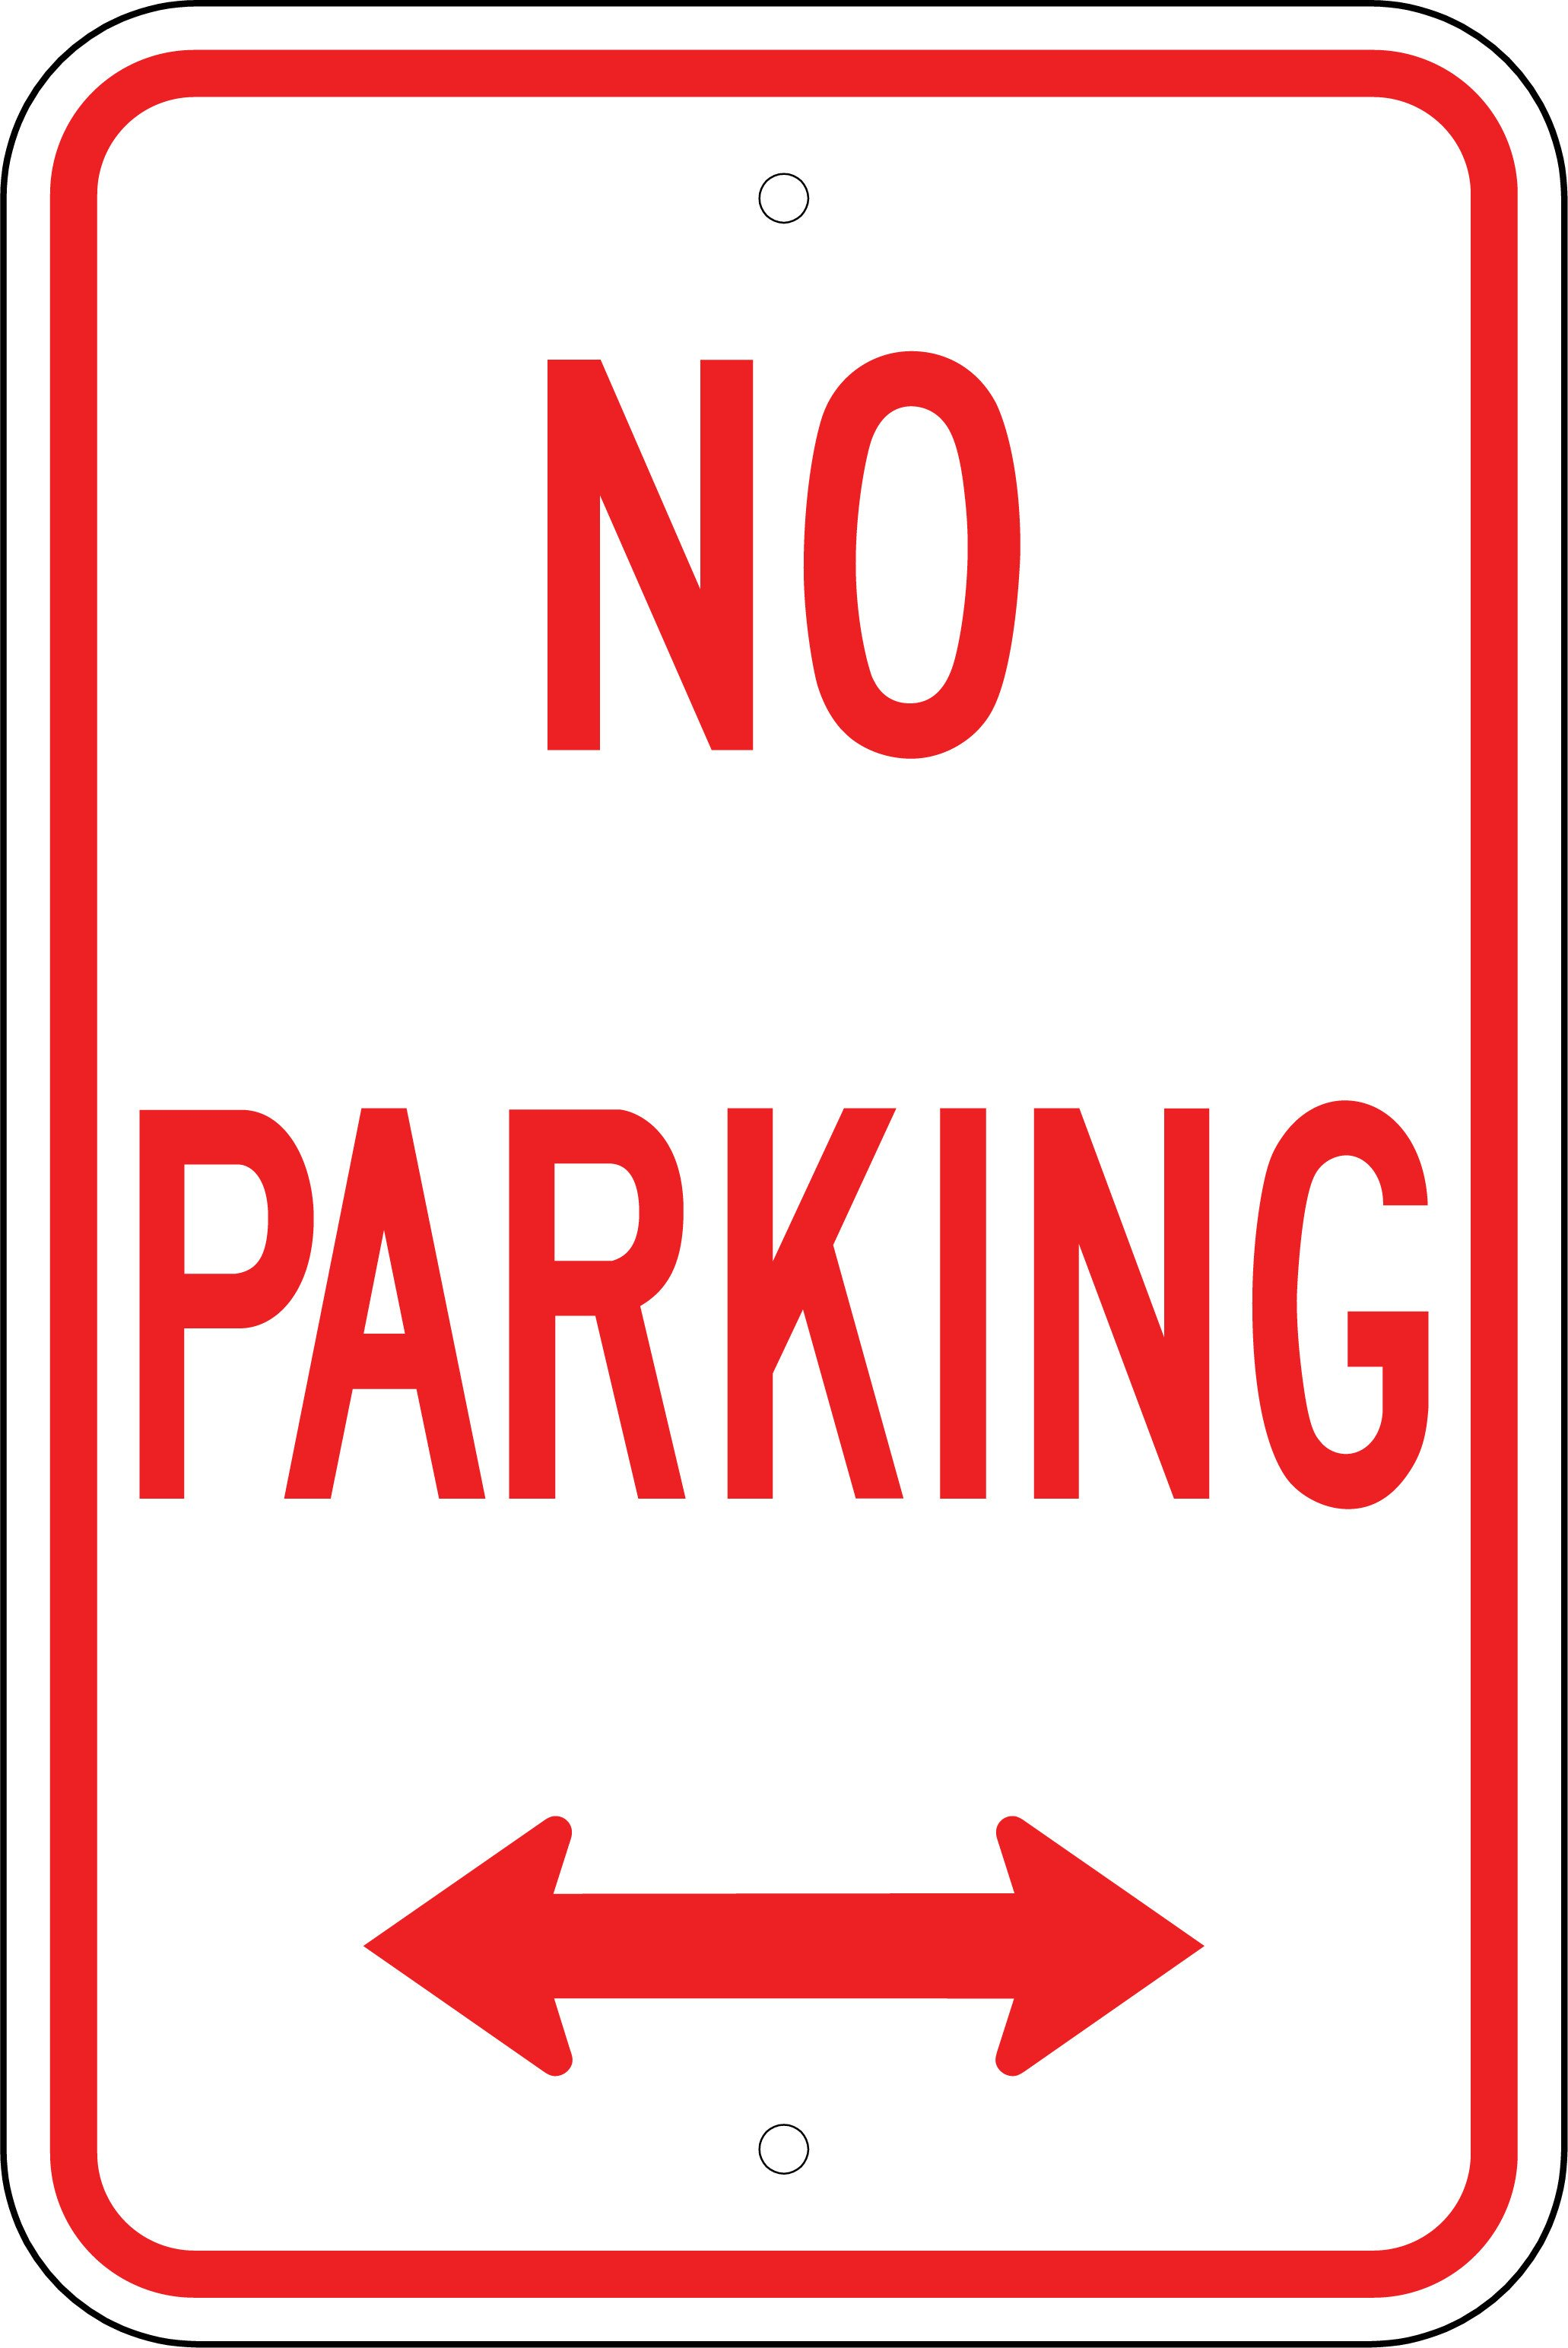 No Parking Signs Template Printable No Parking Signs Free Download Clip Art